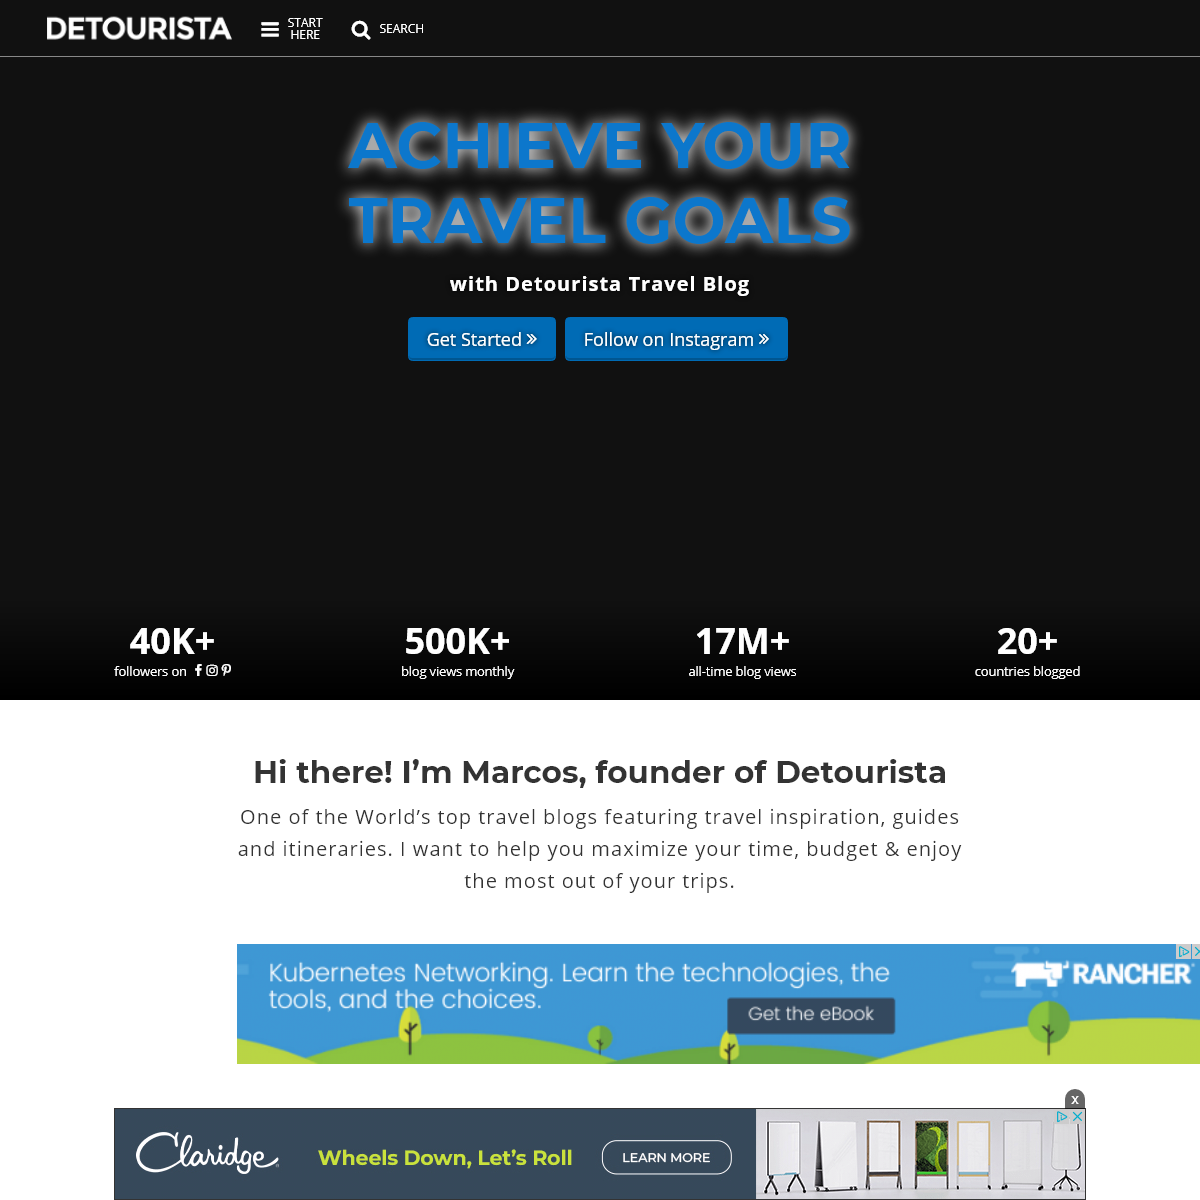 Detourista Travel Blog - Guides + Itinerary, Updates & more